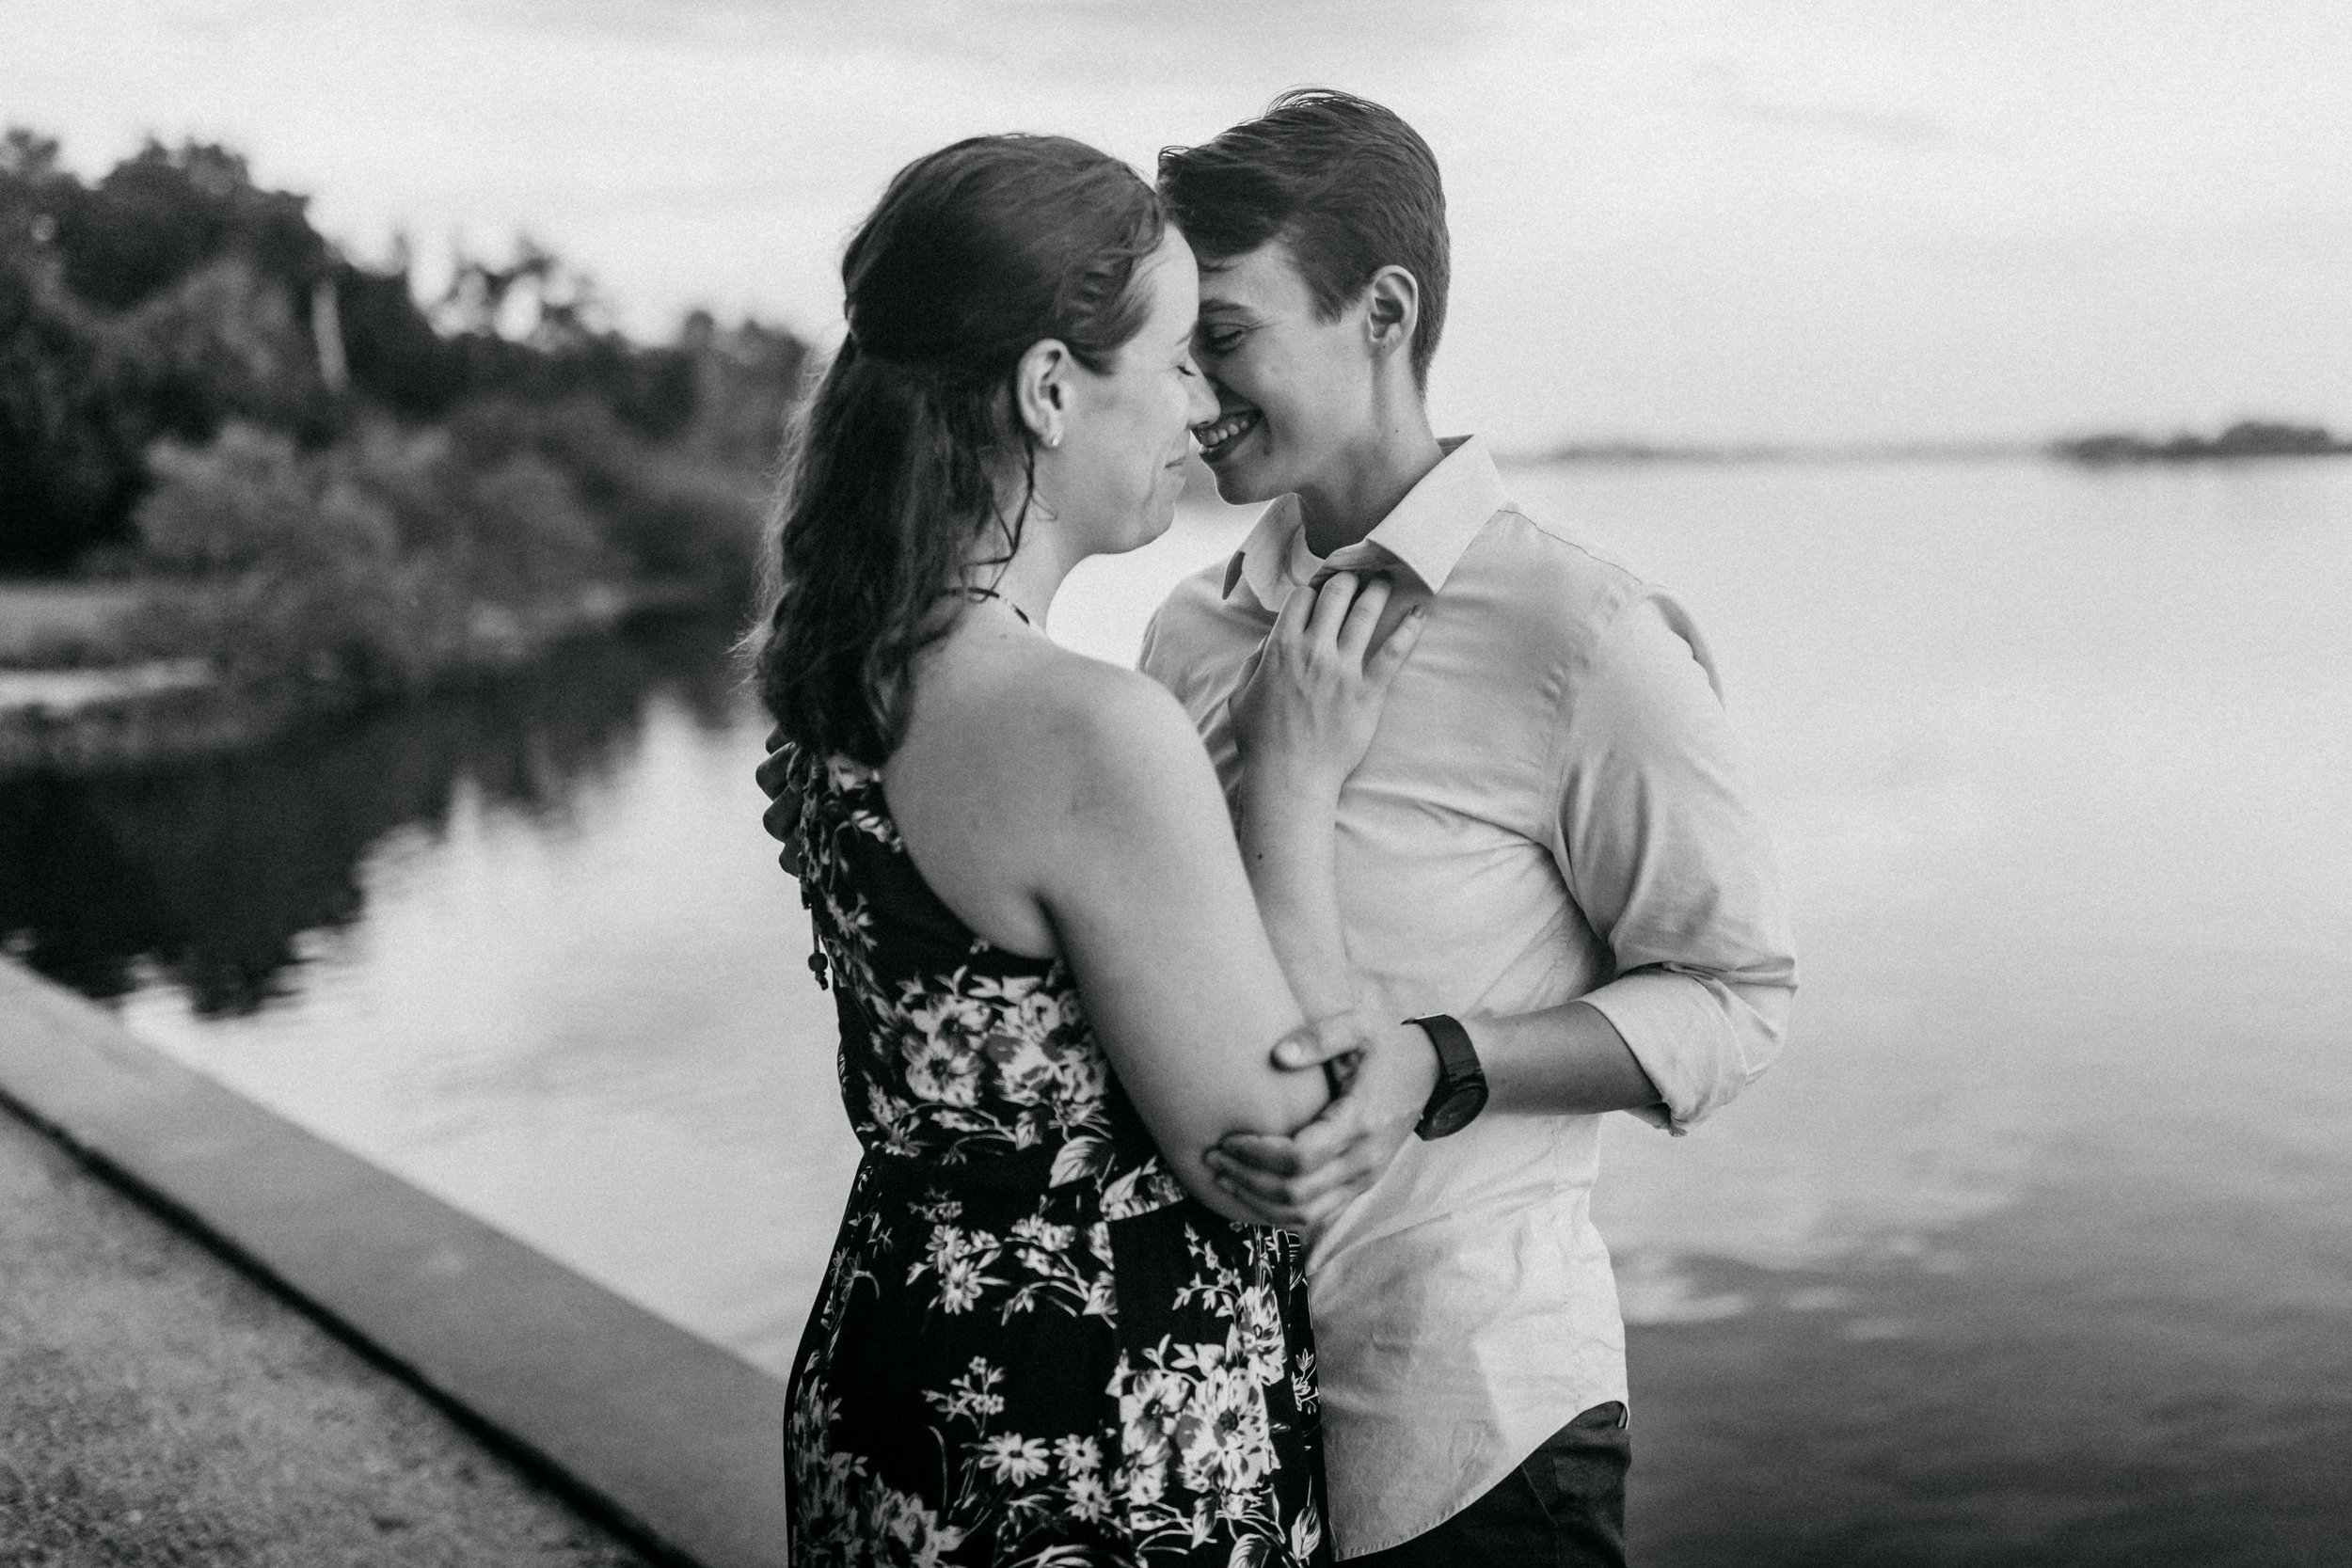 Orlando Natural Forest State Park Engagement Photos- Romantic LGBT Engaged Couples photos136.jpg